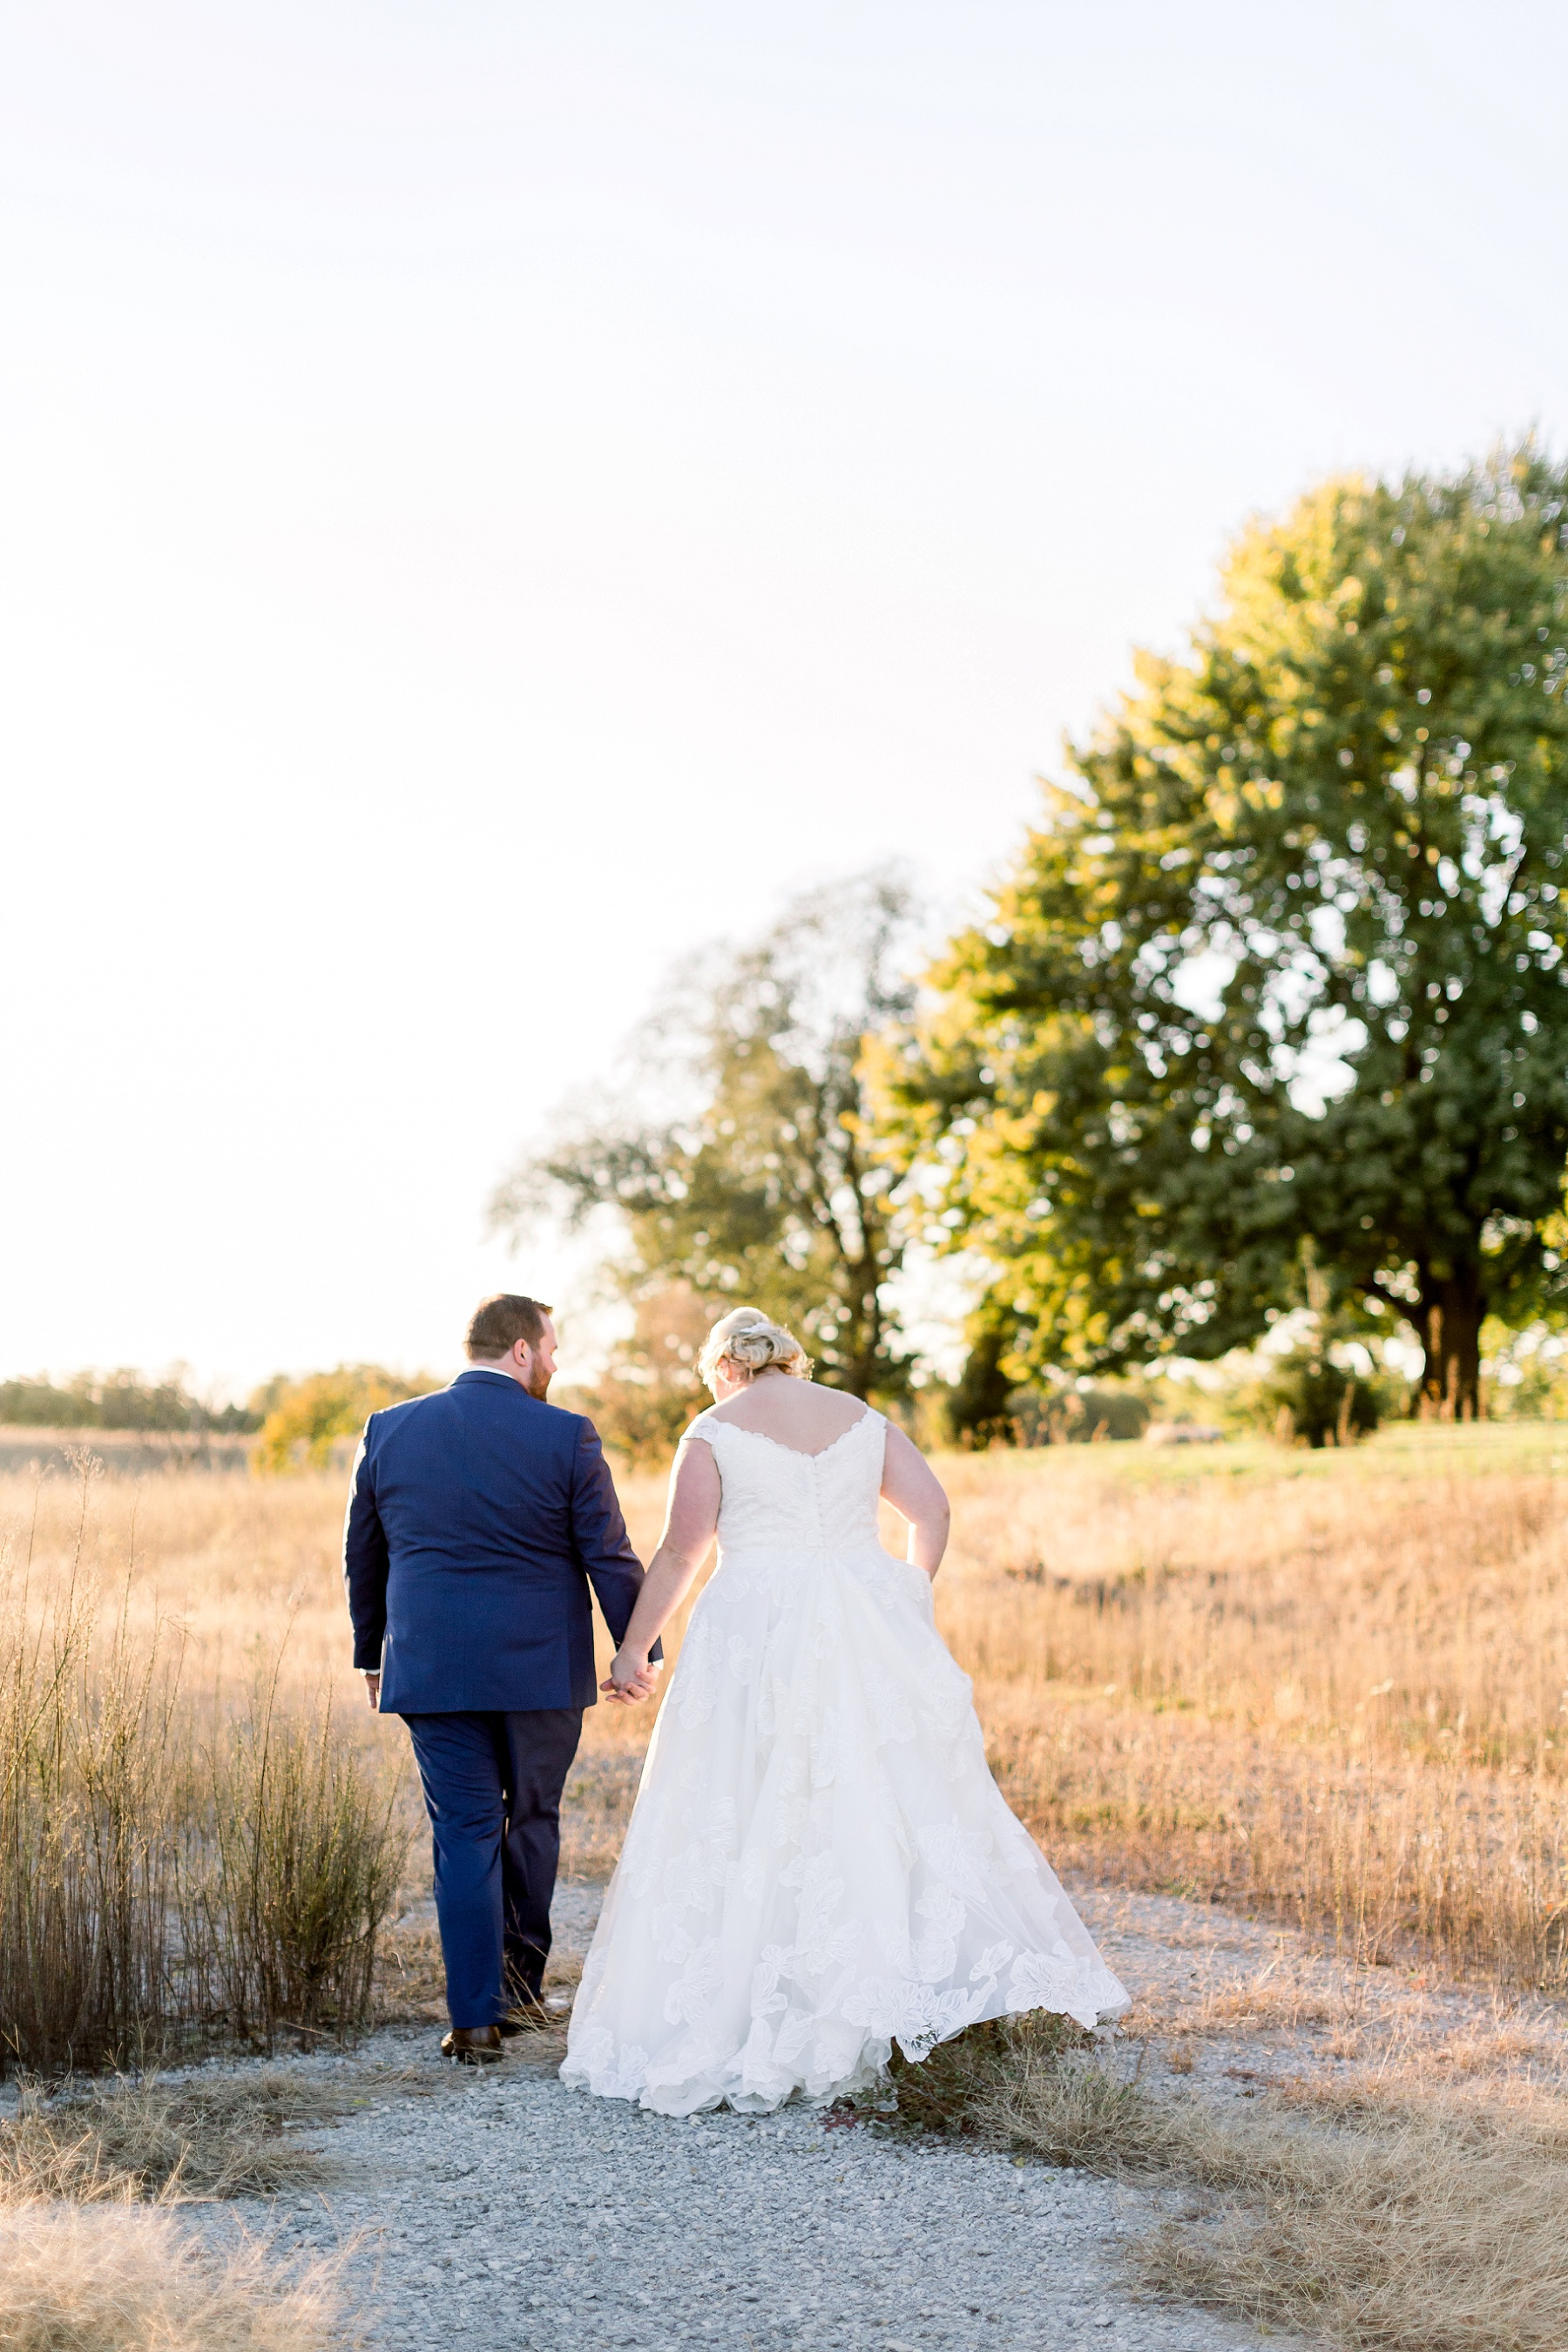 adventurous-authentic-wedding-engagement-photography-kansas-city-elizabeth-ladean-photo_5533.jpg